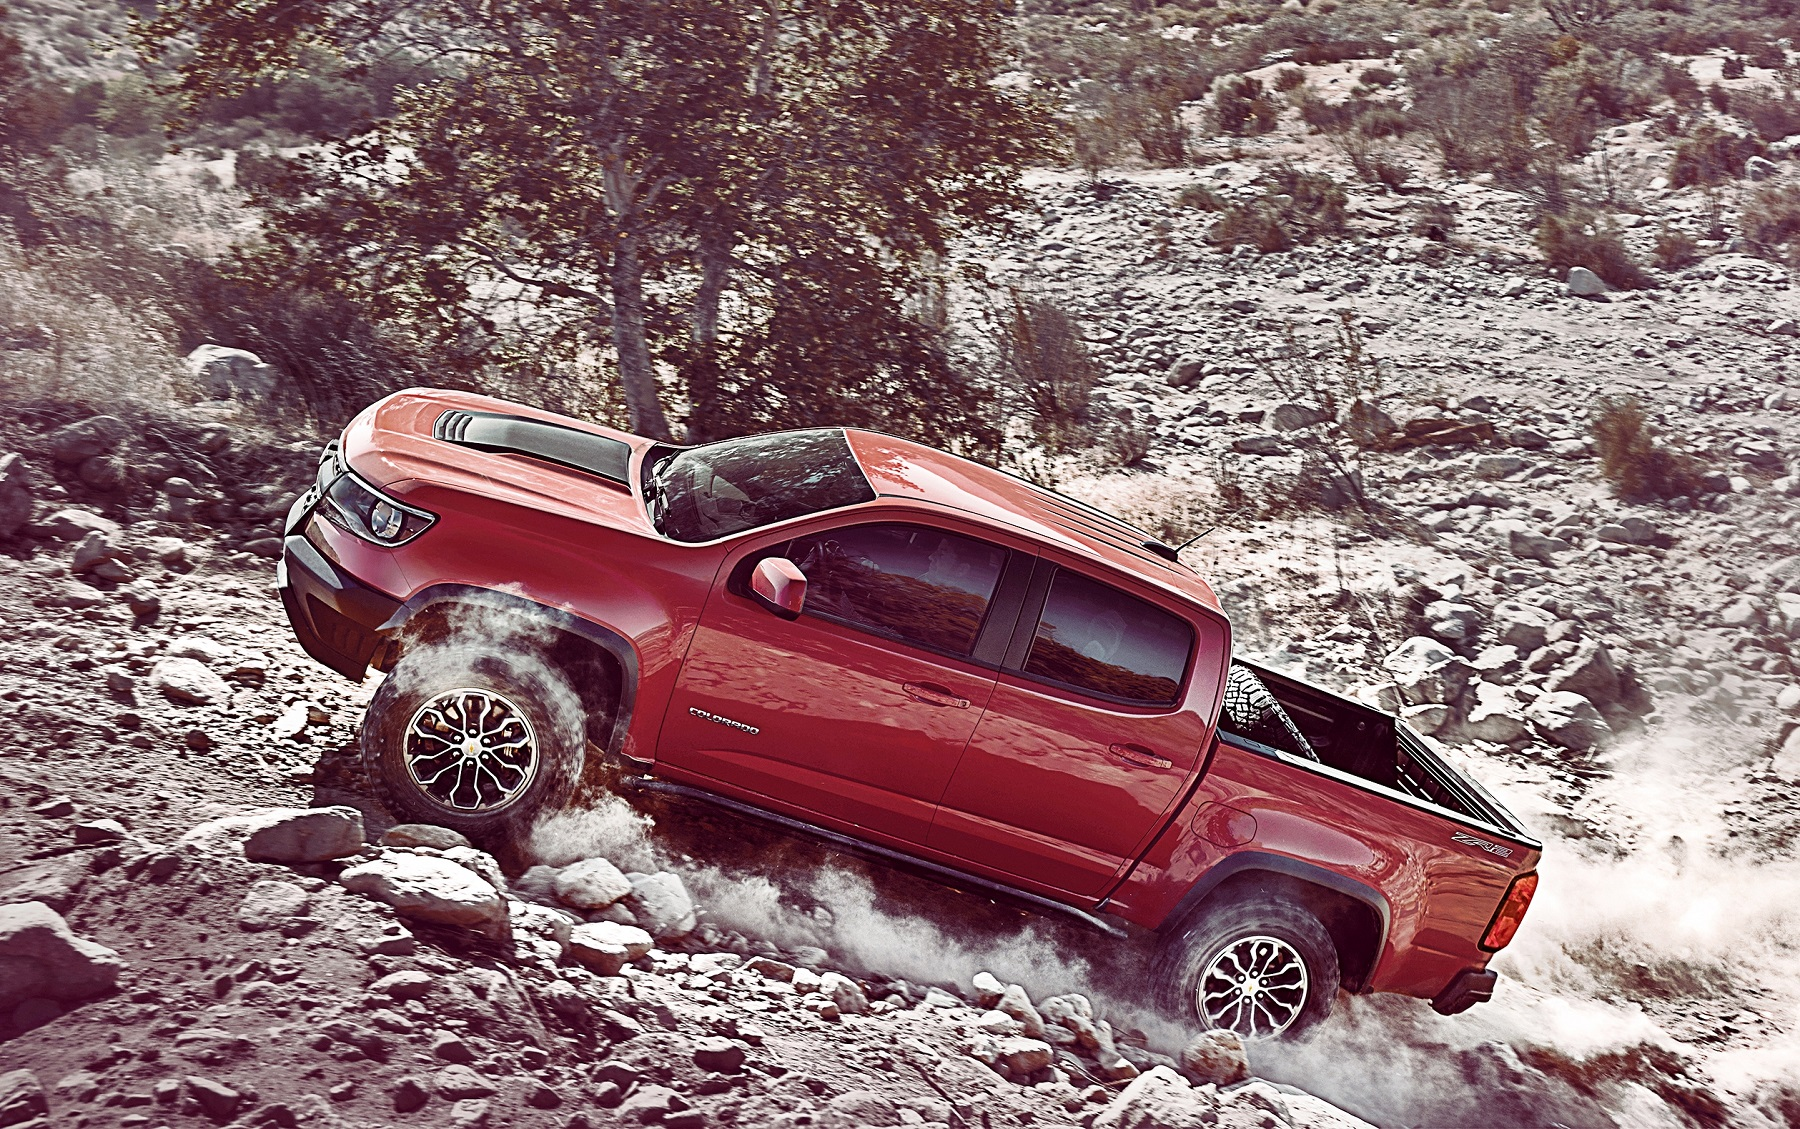 2017 Chevy Colorado ZR2 is rugged off-road truck